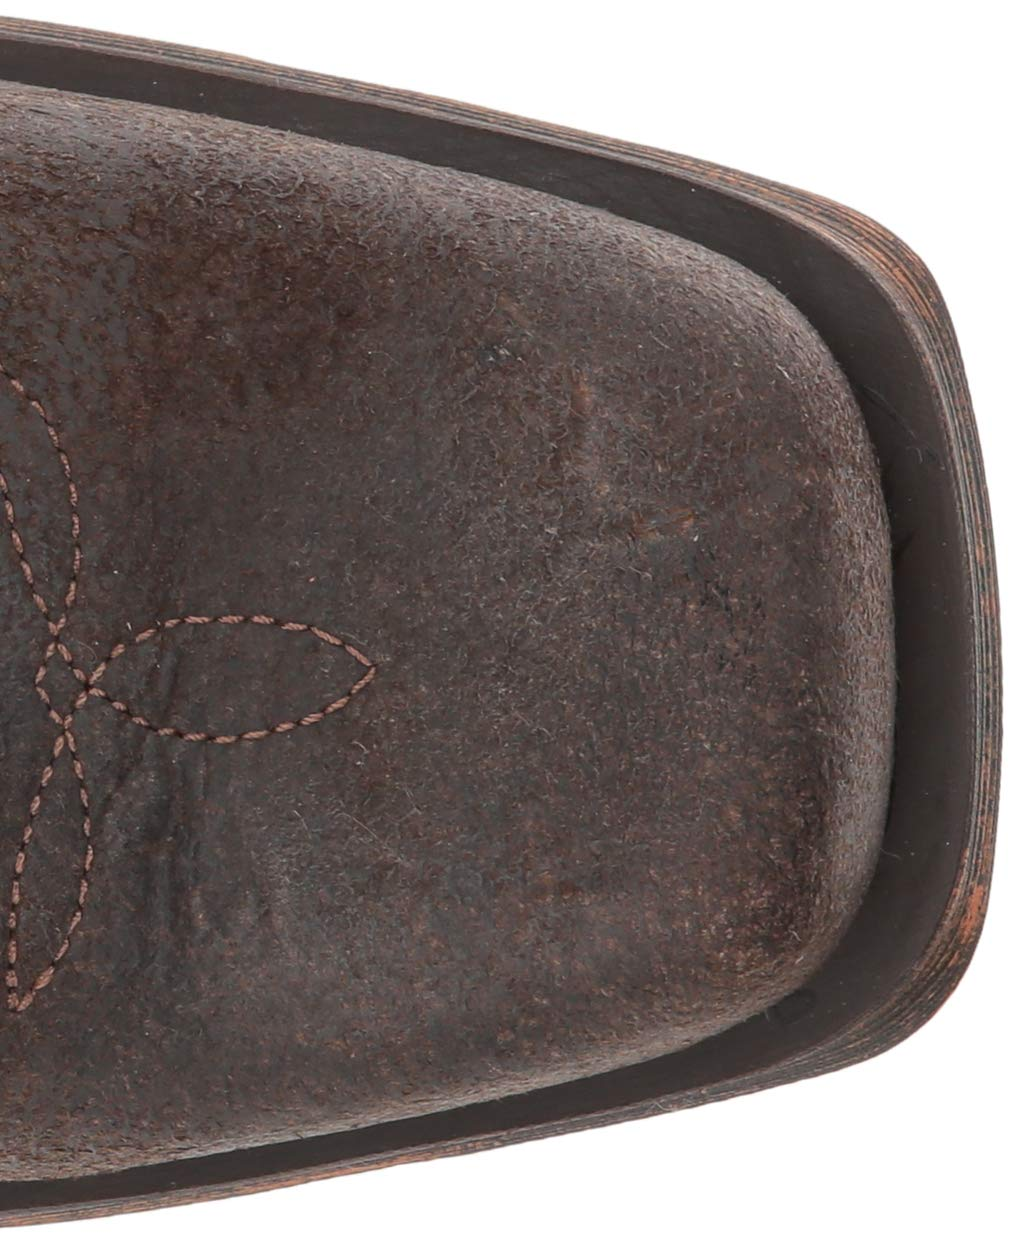 Ariat Men's Rambler Western Boot, Antiqued Grey, 13 2E US by ARIAT (Image #8)